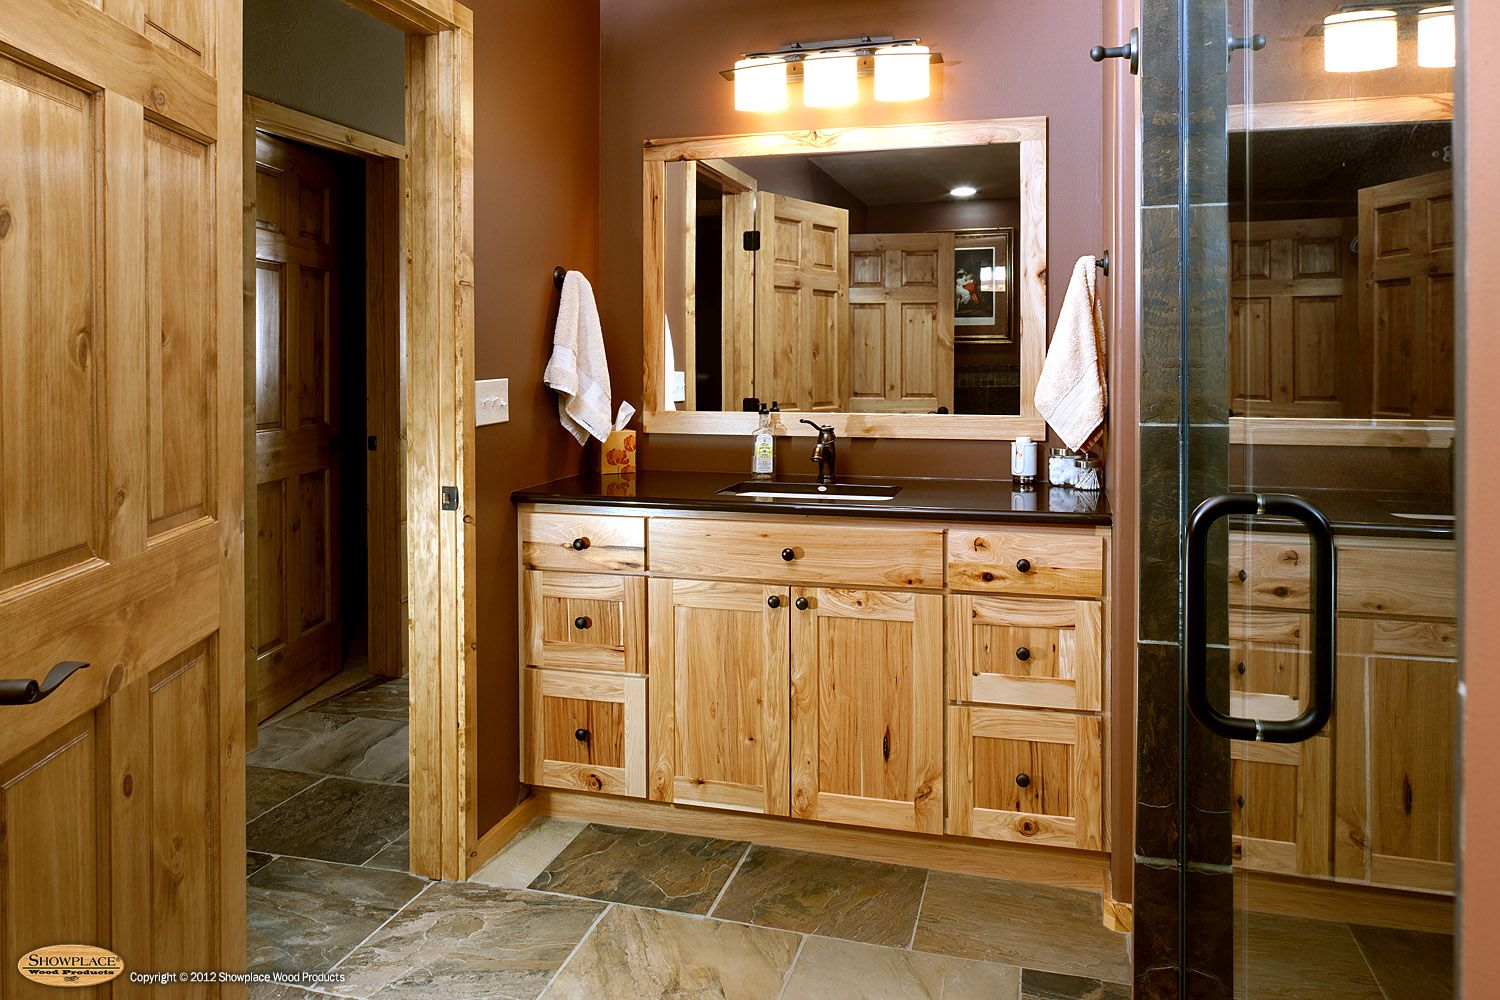 Rustic Hickory Cabinets Ears Again In This Lower Level Bath